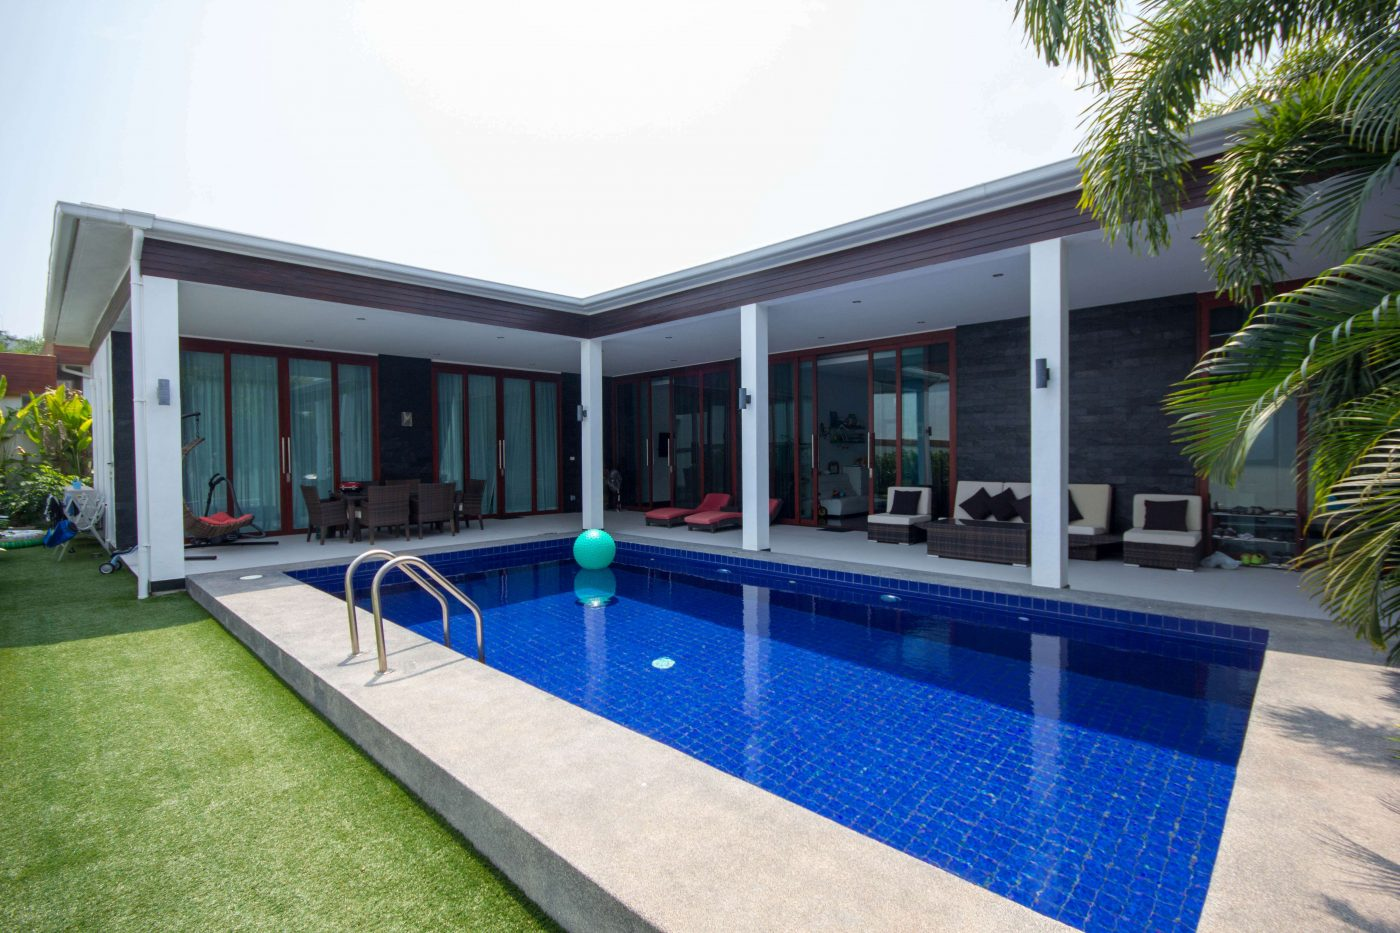 Modern Bungalow with Private Pool for sale at Hua Hin District, Prachuap Khiri Khan, Thailand